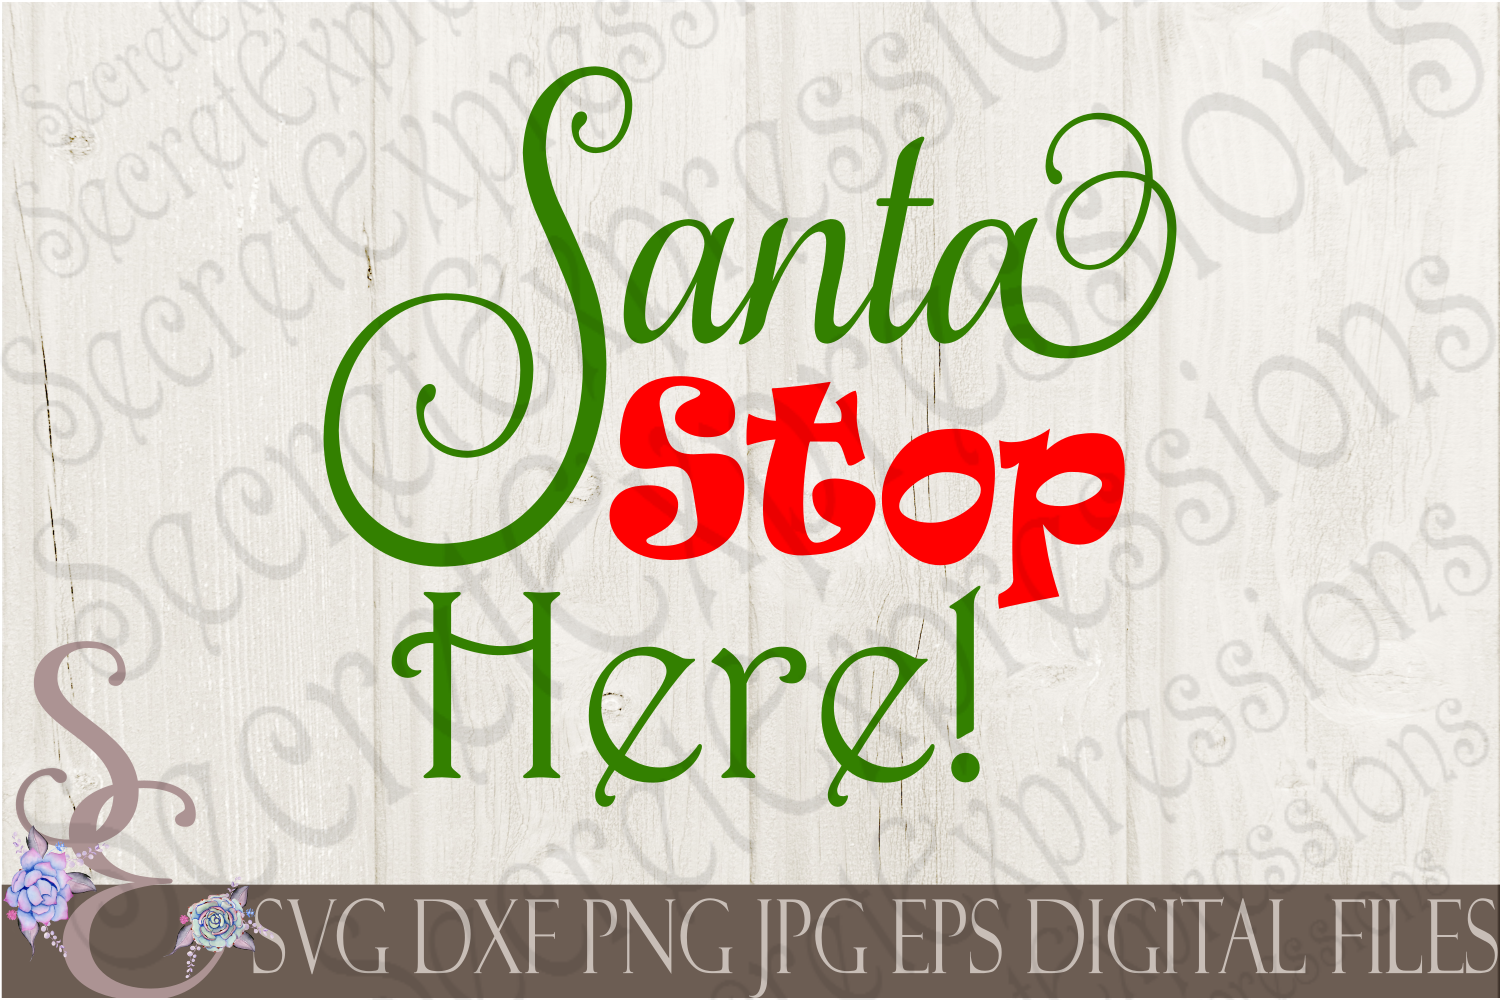 Kid Christmas SVG Bundle 9 Designs example image 8